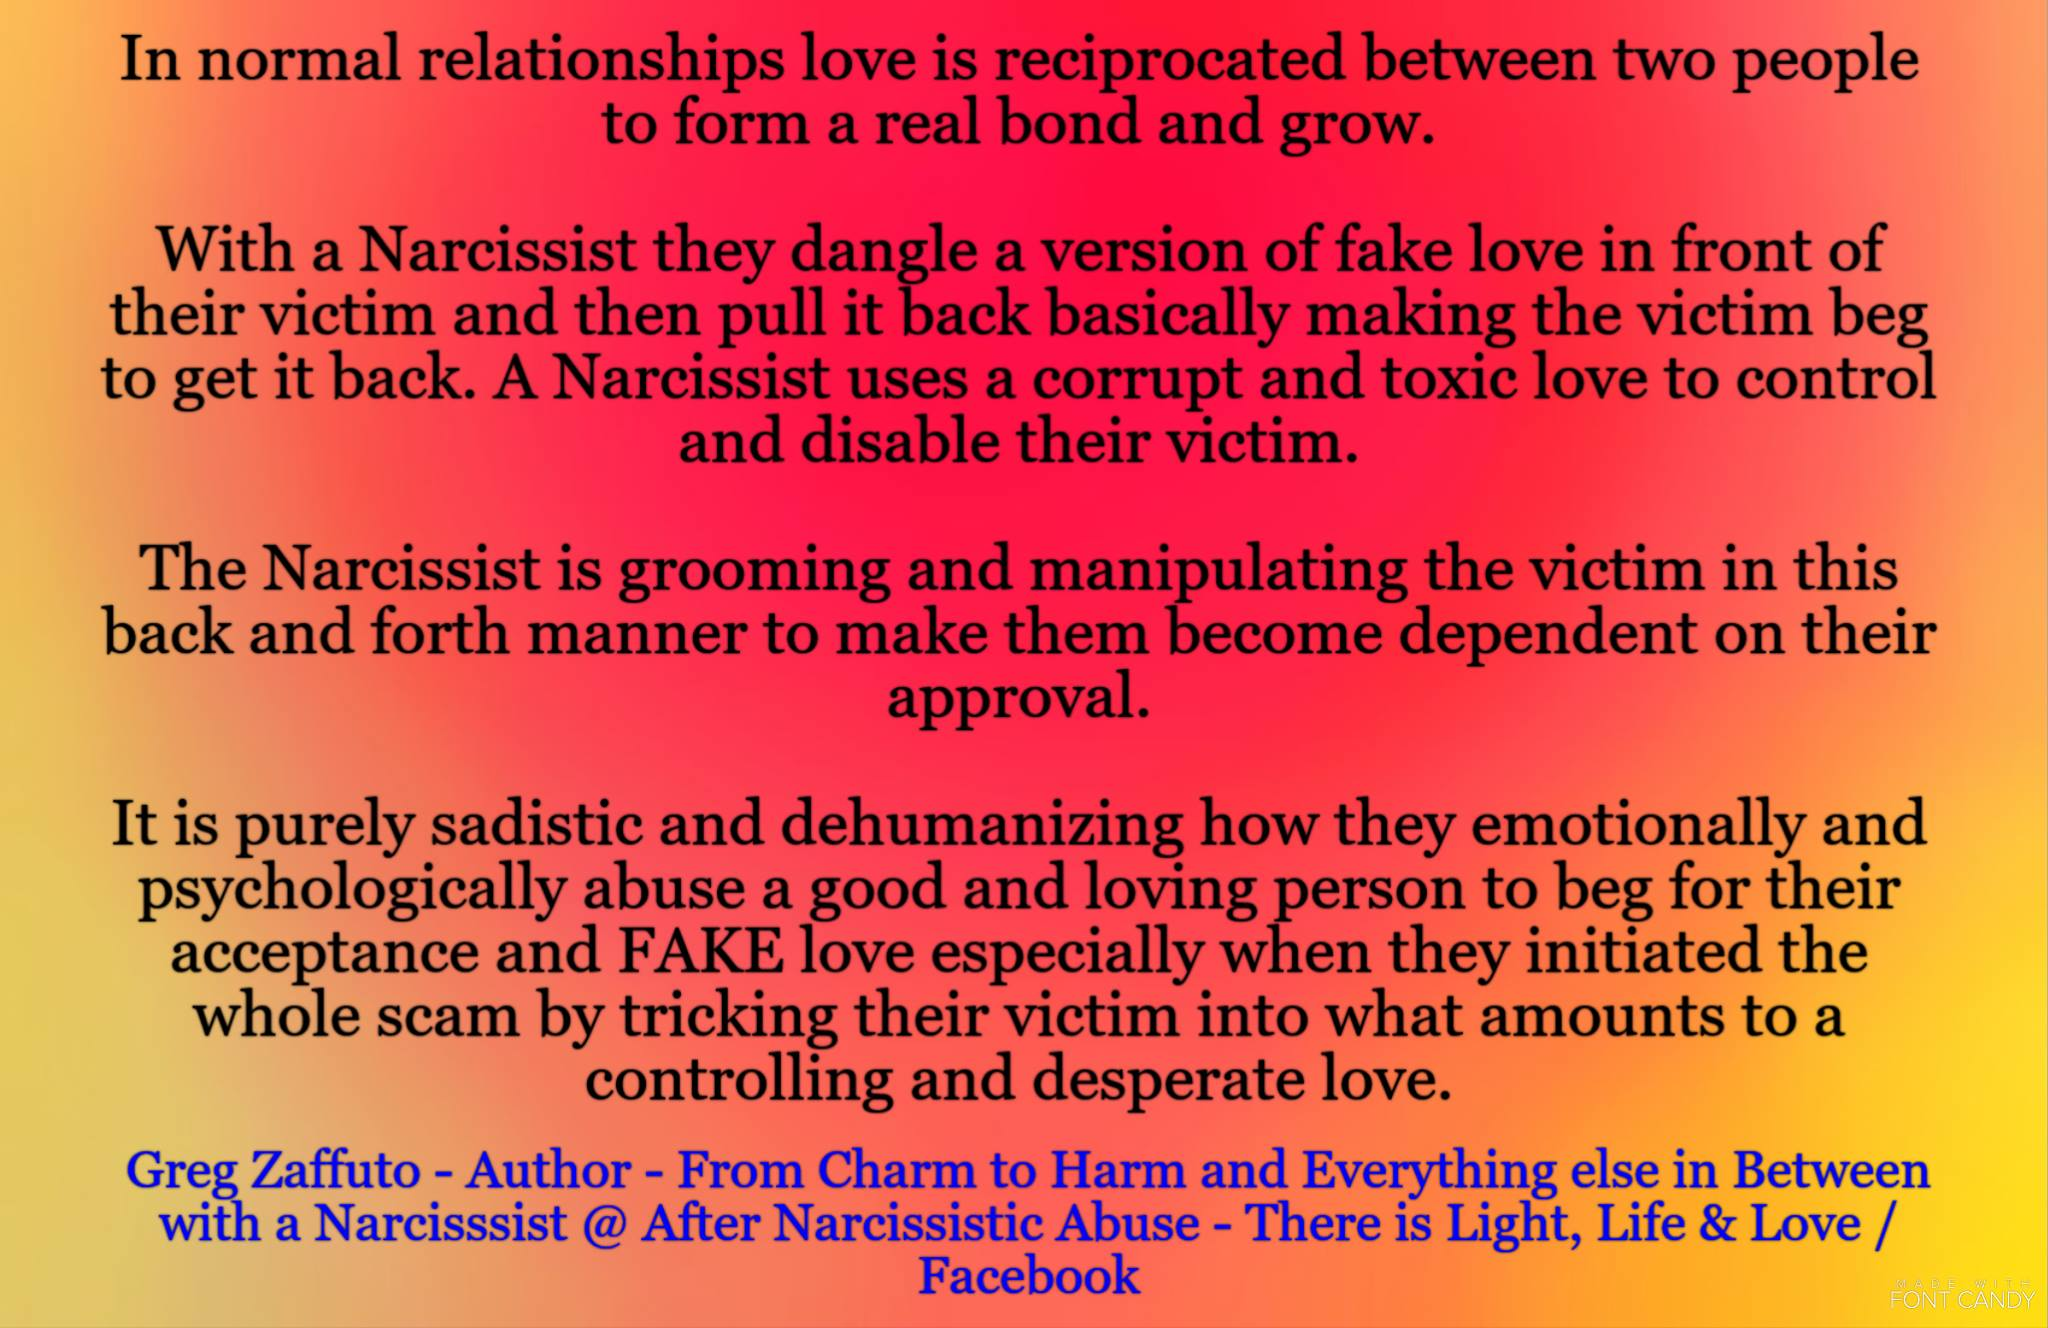 The highs and lows of an emotionally and psychologically abusive